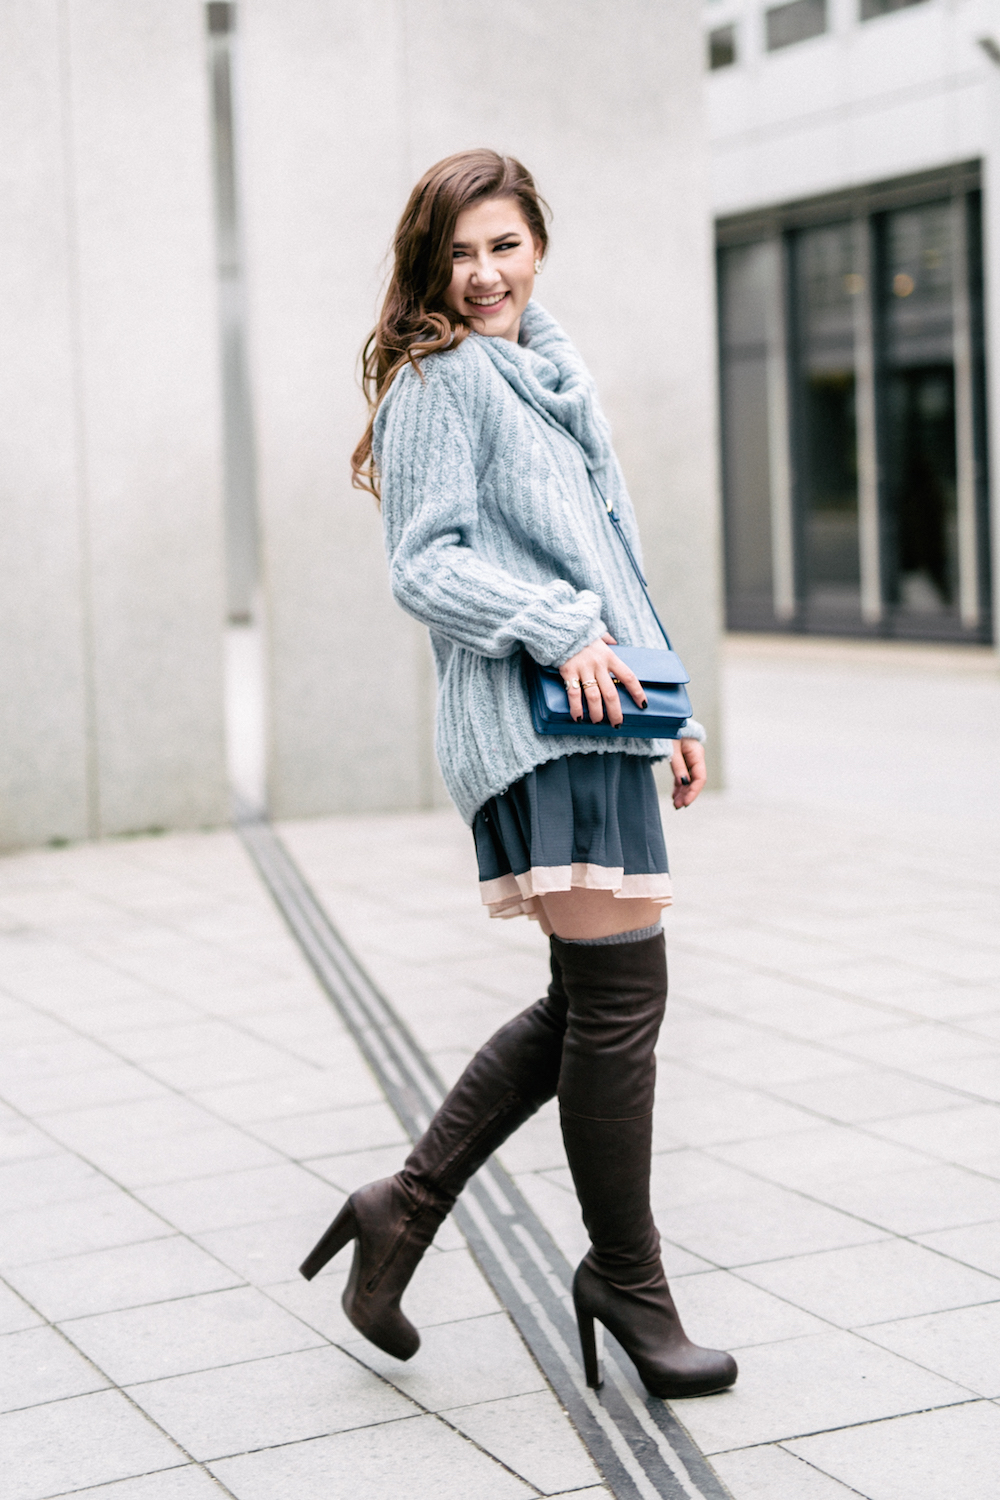 sara-bow-blauer-wollpulli-overknee-outfit